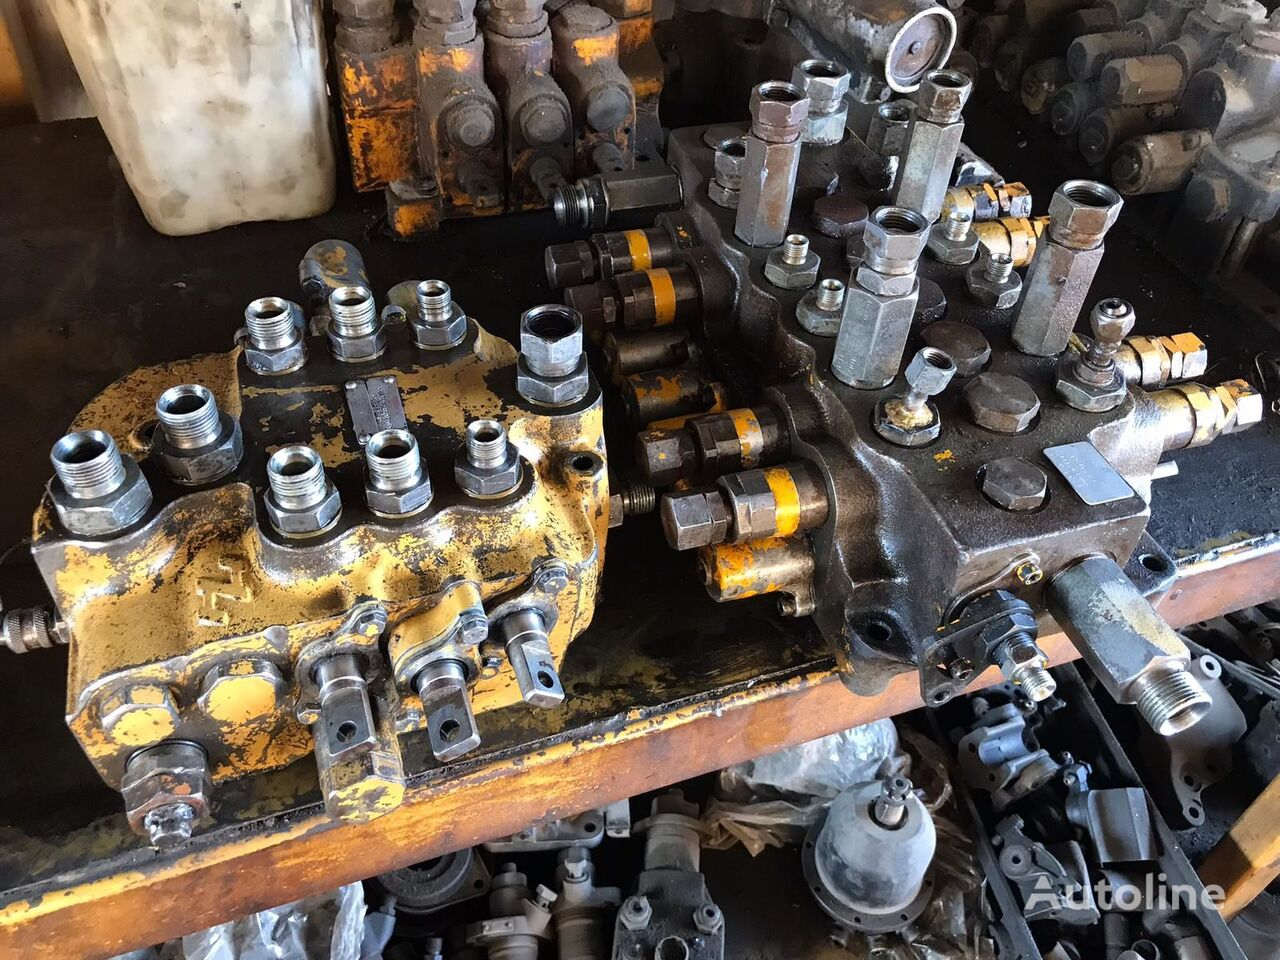 USED JCB 3CX 4CX BACKHOE LOADER CONTROL VALVE FRONT VALVE REAR V distributør for JCB 3CX / 4CX traktorgraver